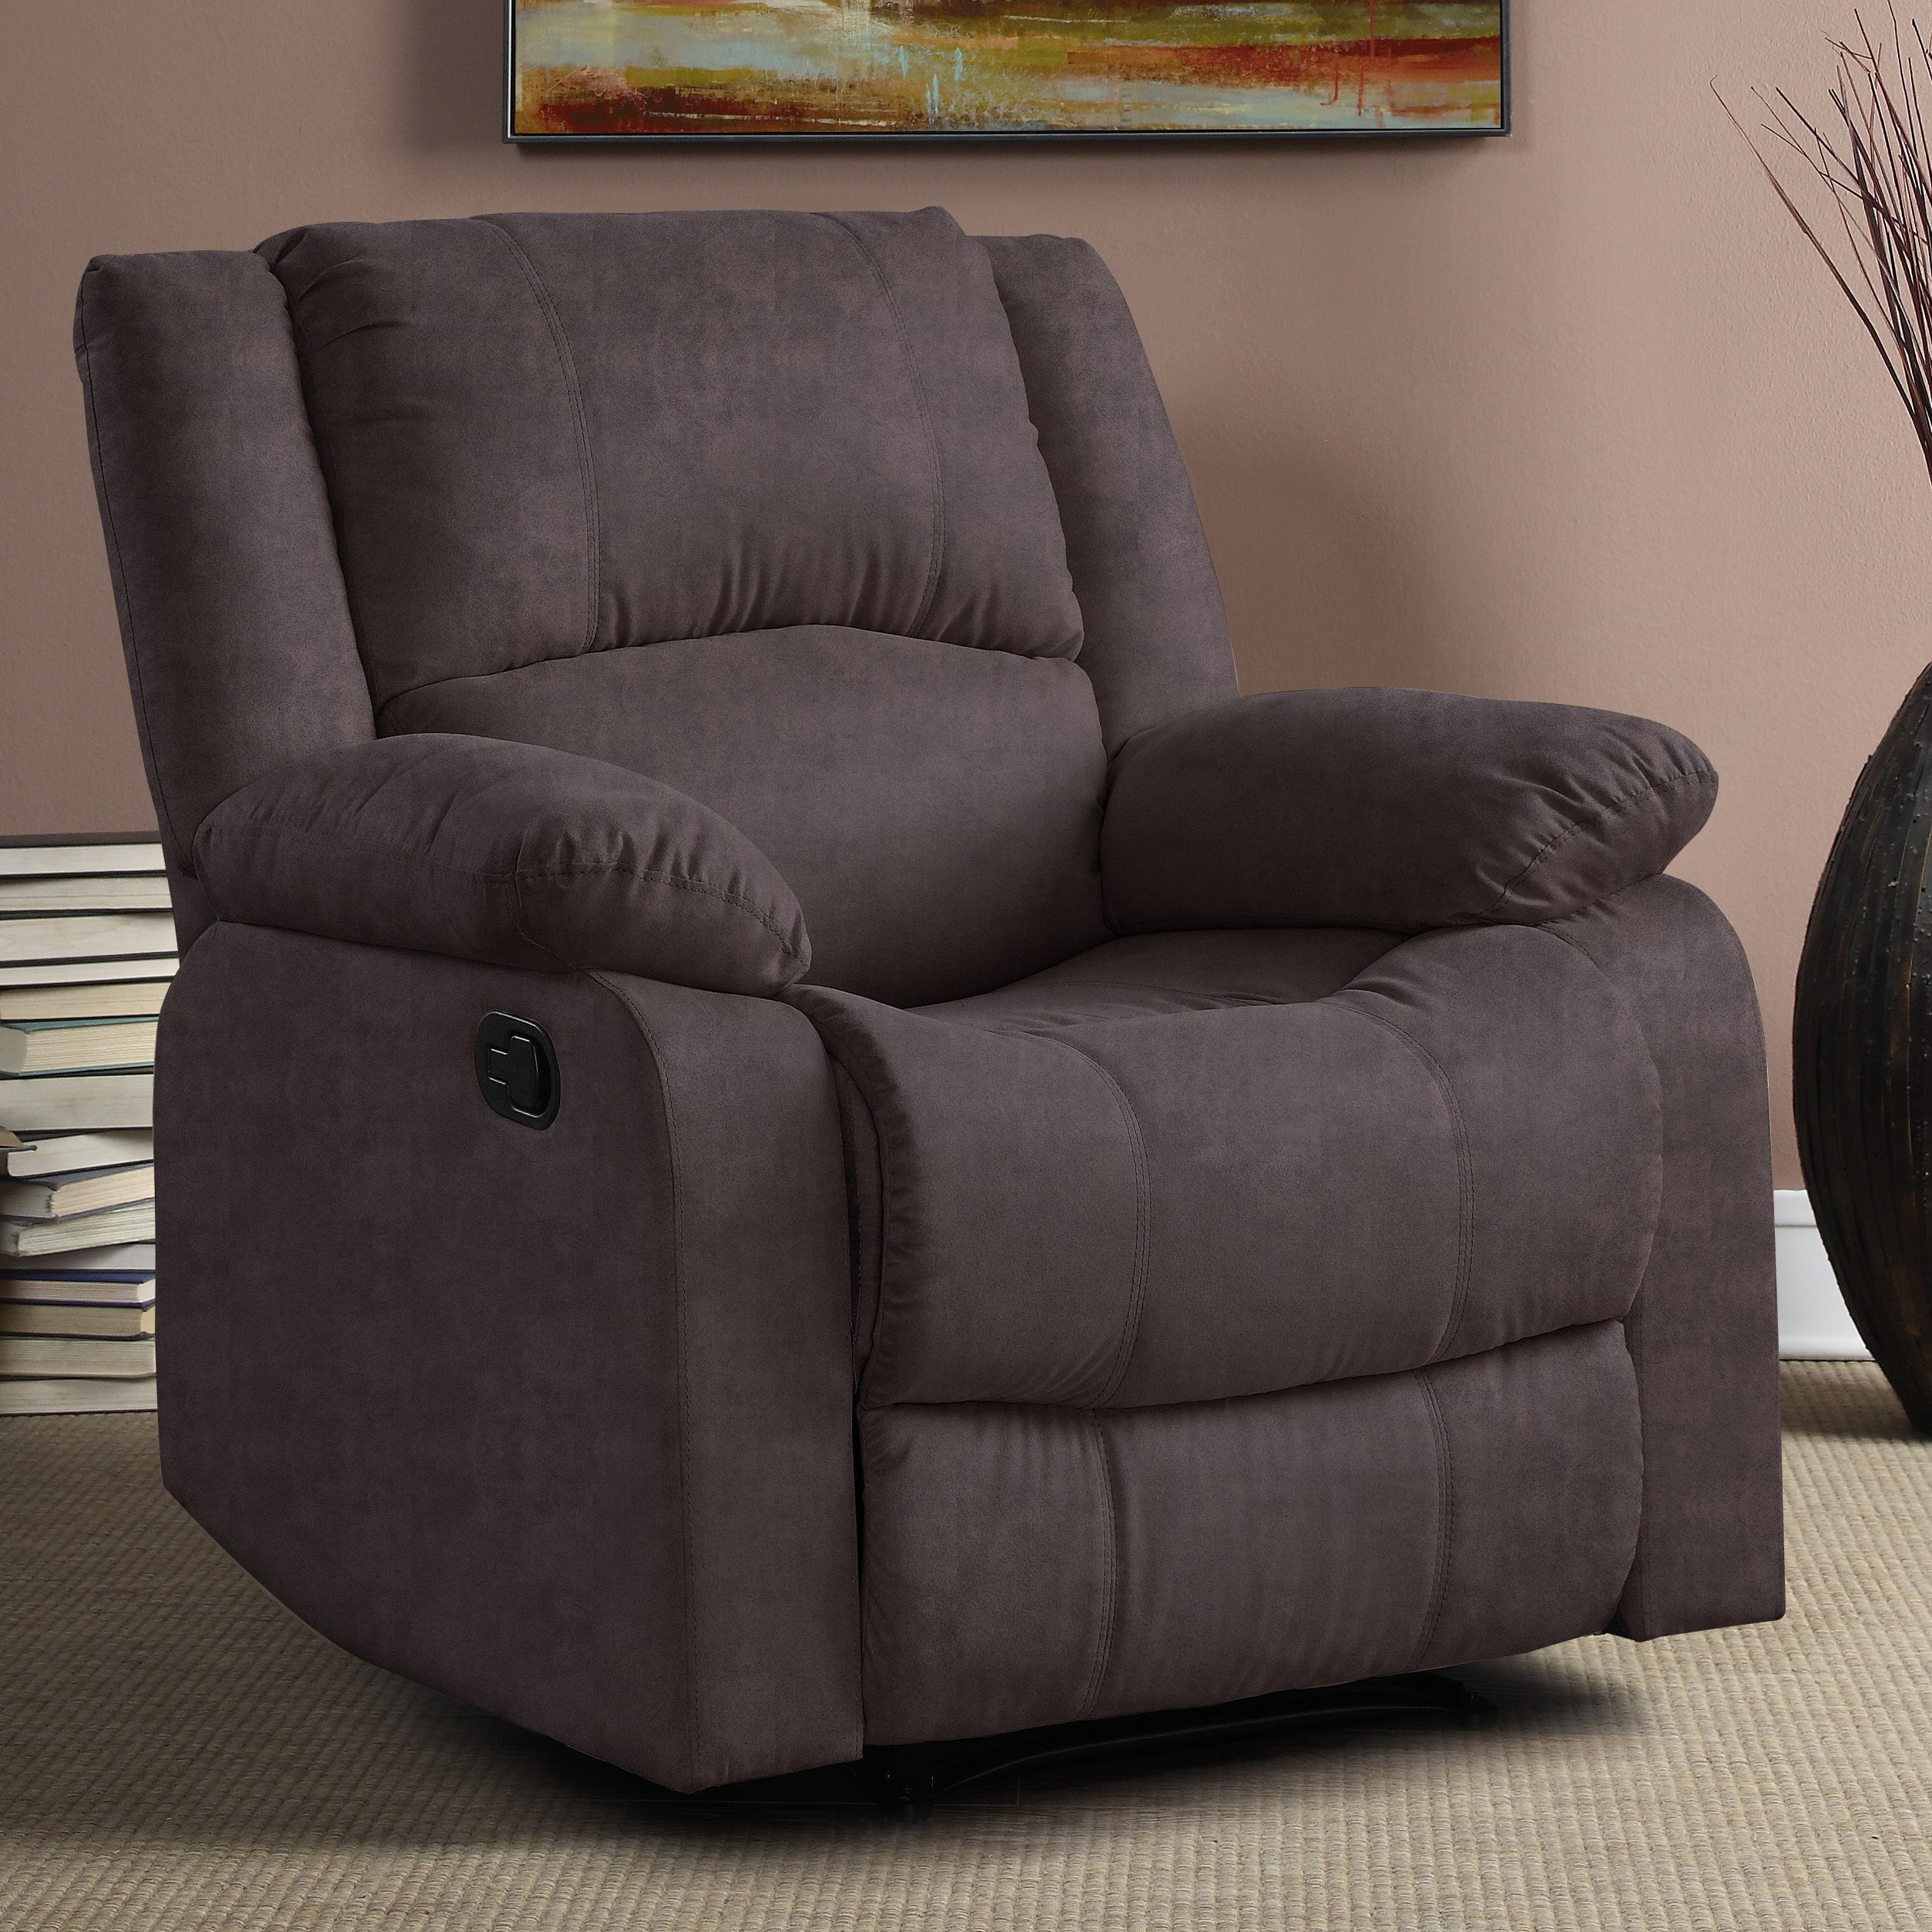 Free 2 Day Shipping Buy Warren Recliner Single Chair In Chocolate Microfiber At Walmart Com In 2020 Recliner Chair Recliner Single Chair